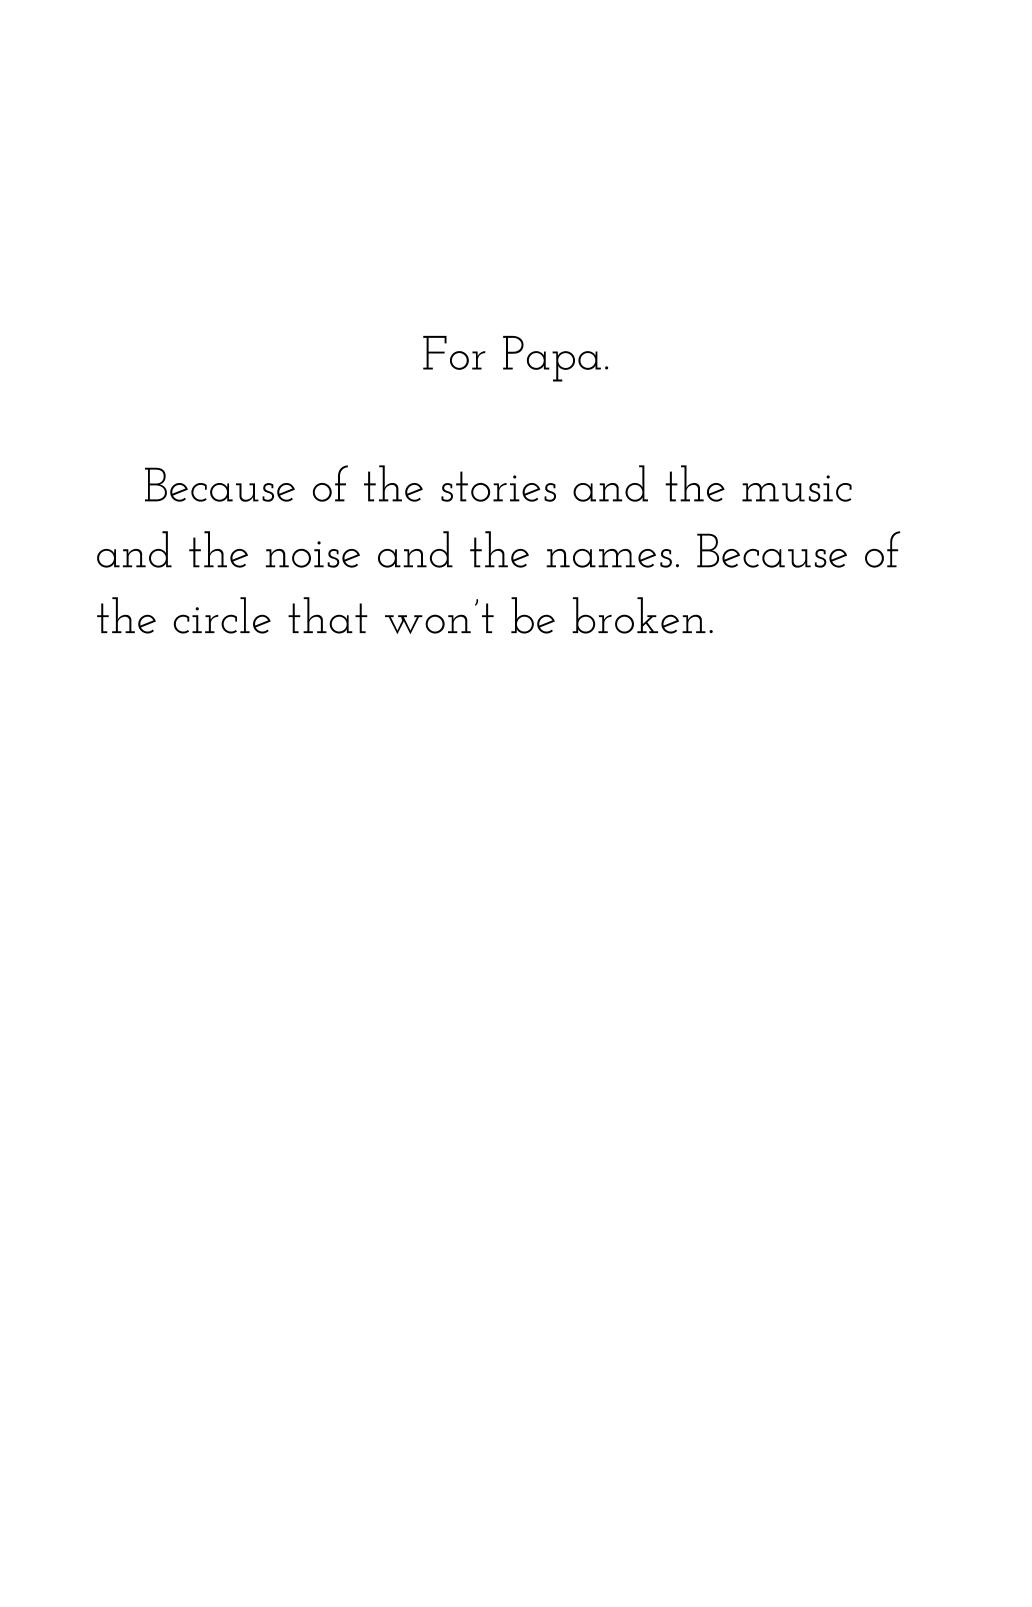 "Excerpt from Dedication Project, ""For Papa, Because of the stories and the music and the noise and the names. Because of the circle that won't be broken."